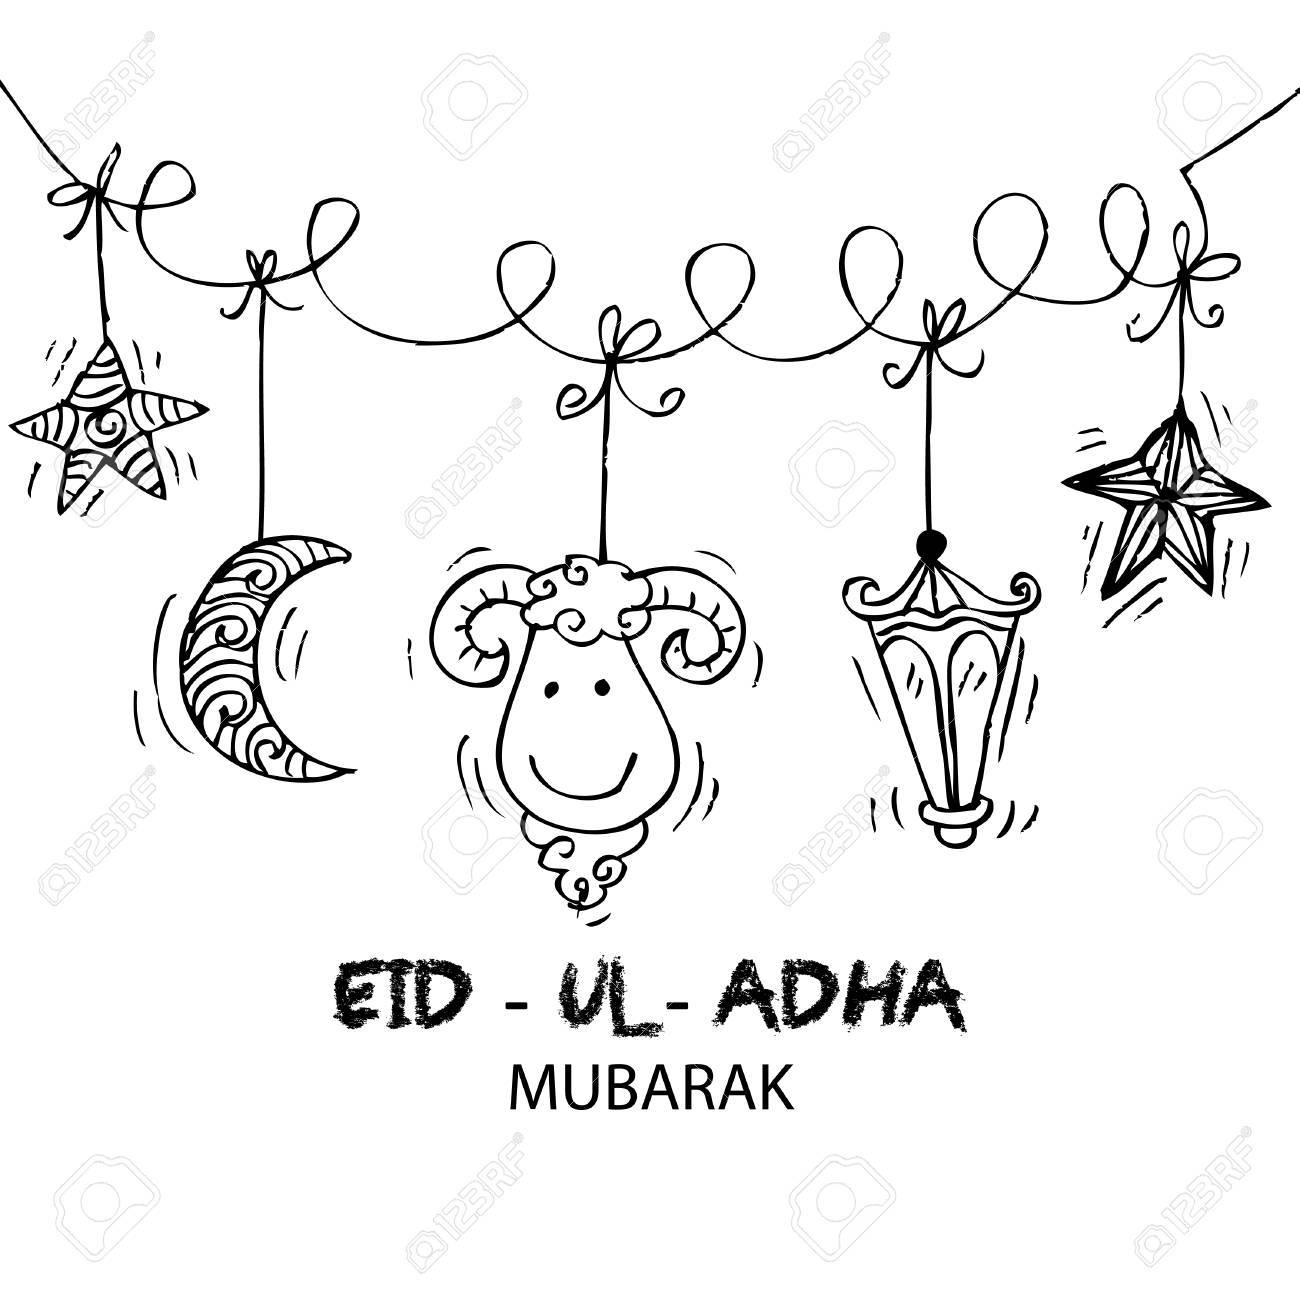 Eid clipart black and white 1 » Clipart Portal.